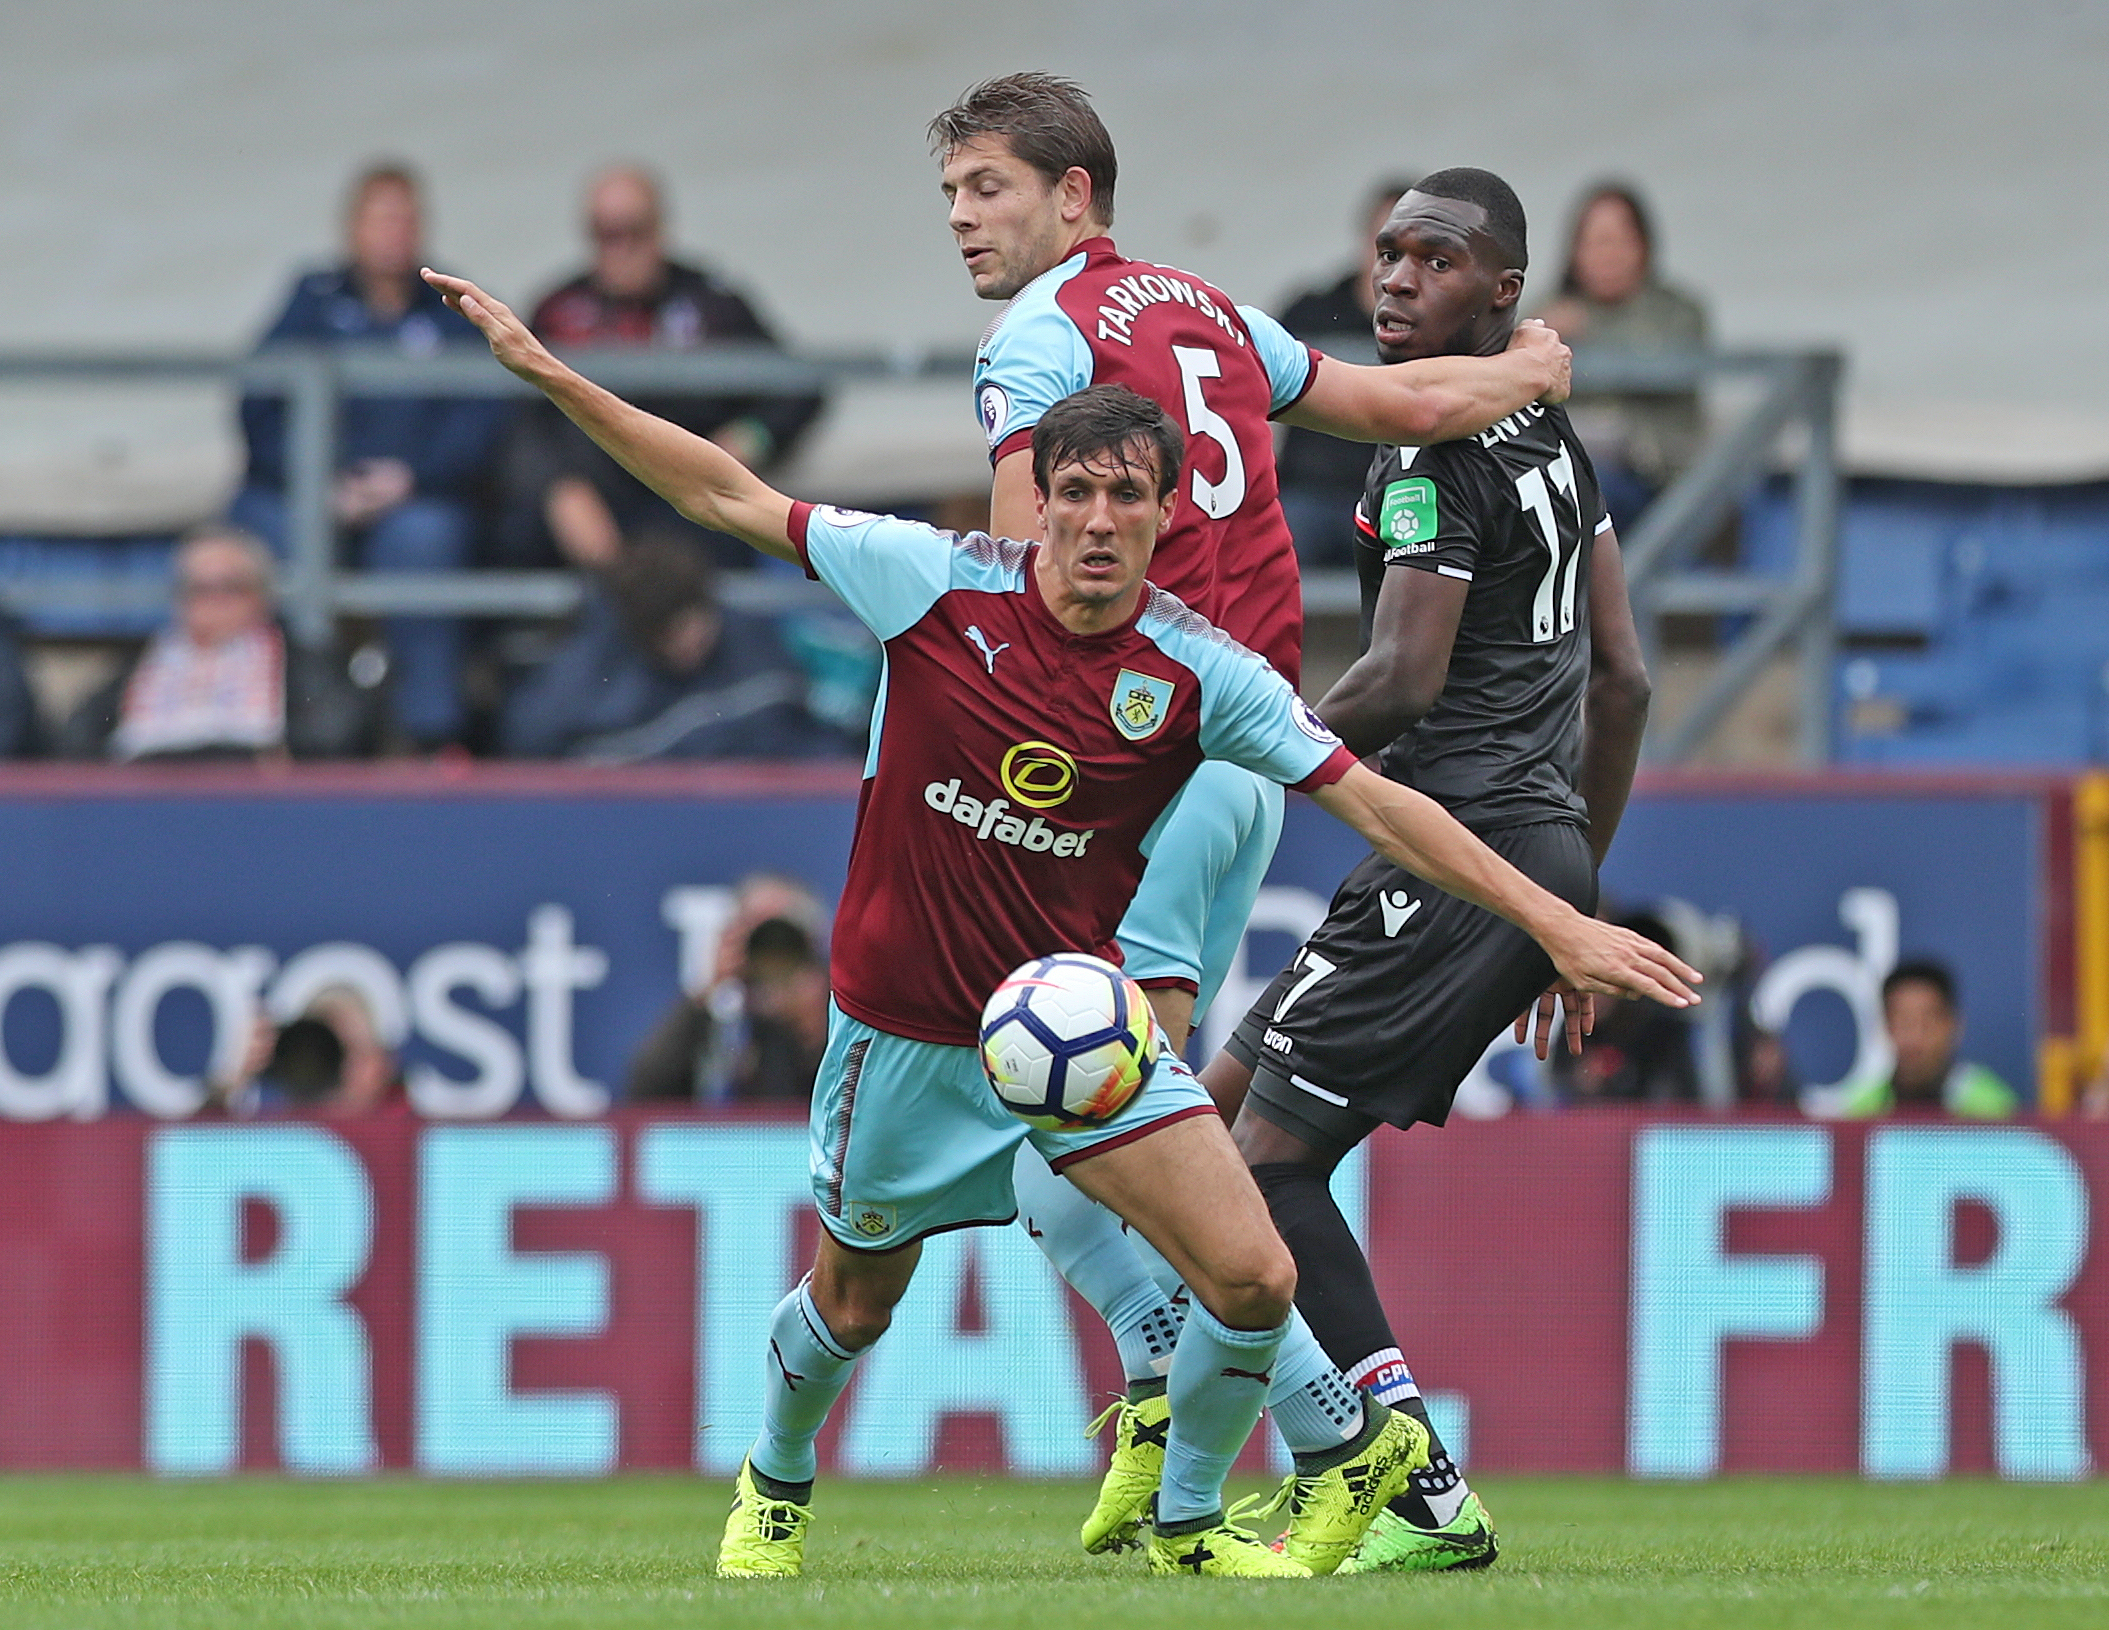 IMPRESSED: Jack Cork and James Tarkowski were two of the better performers for Burnley